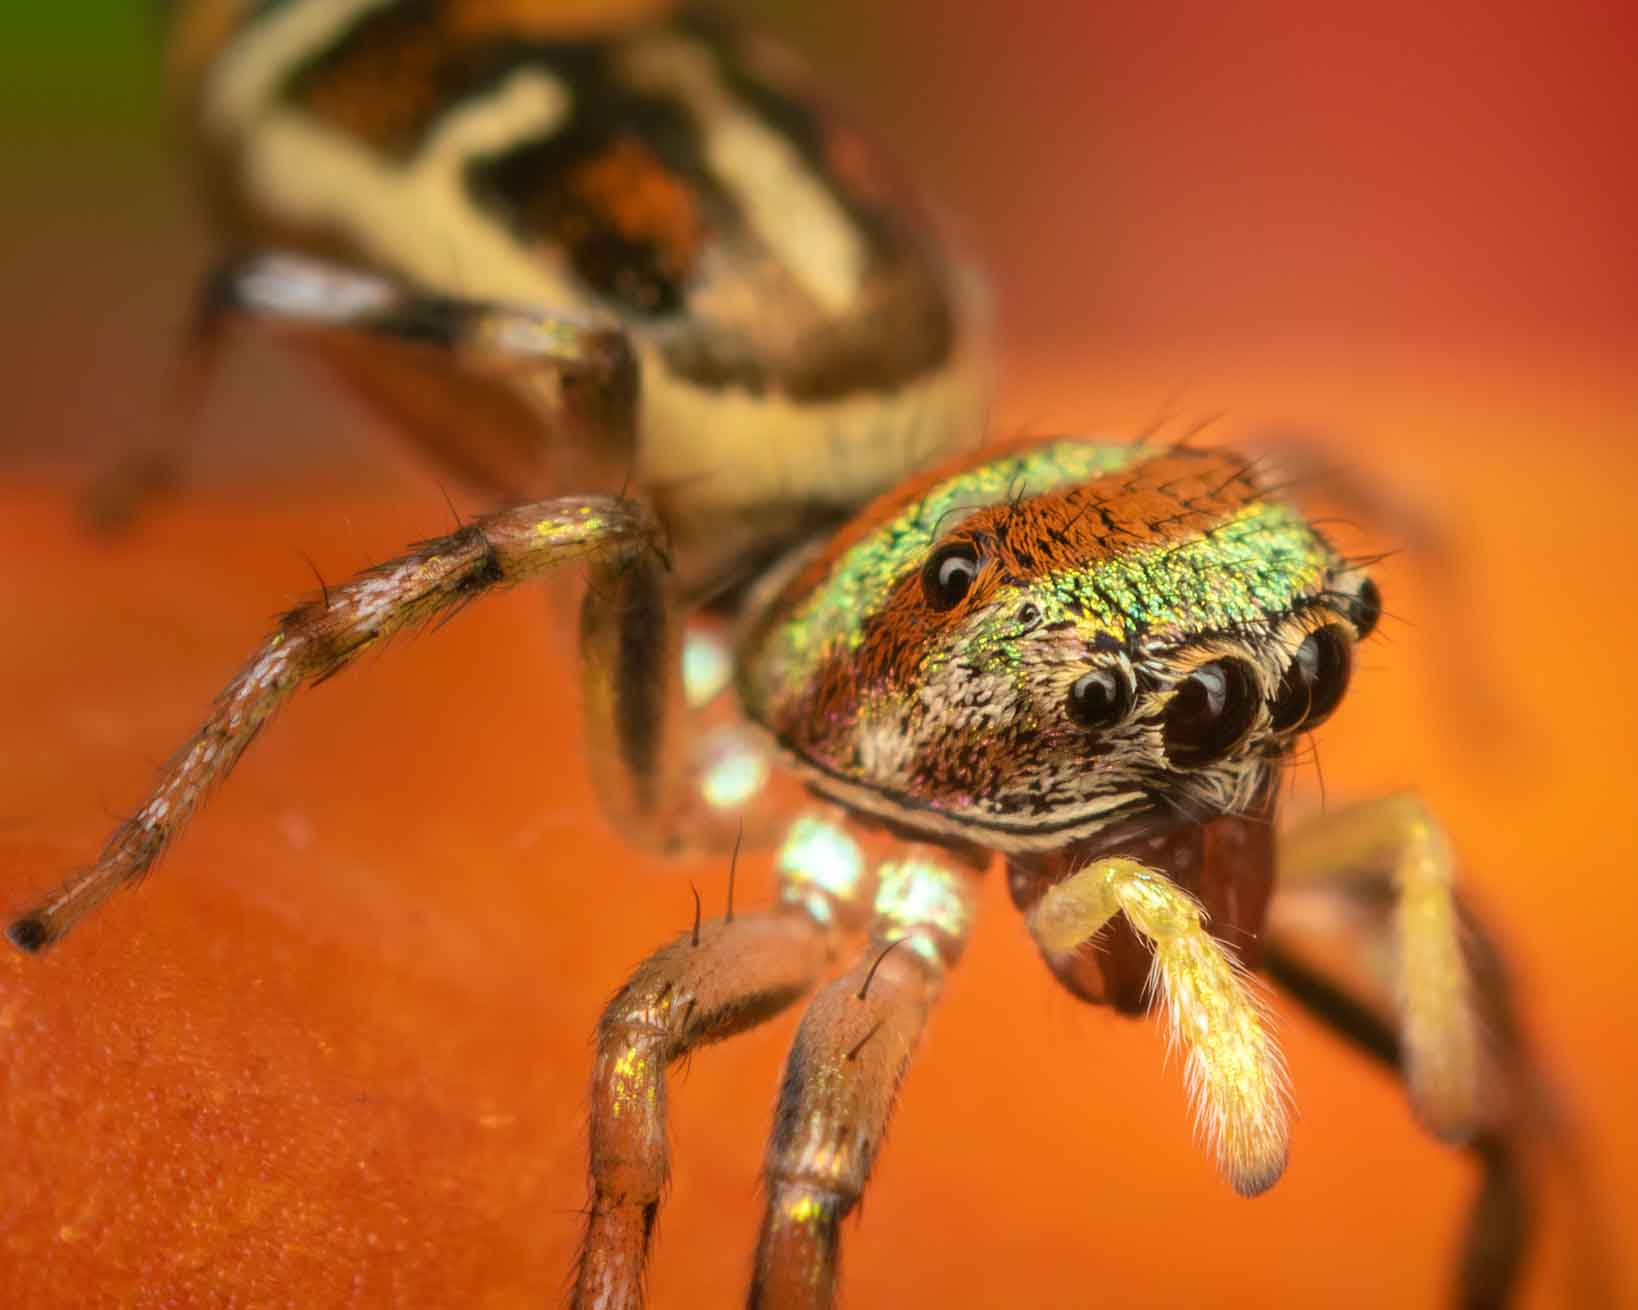 A colourful jumping spider